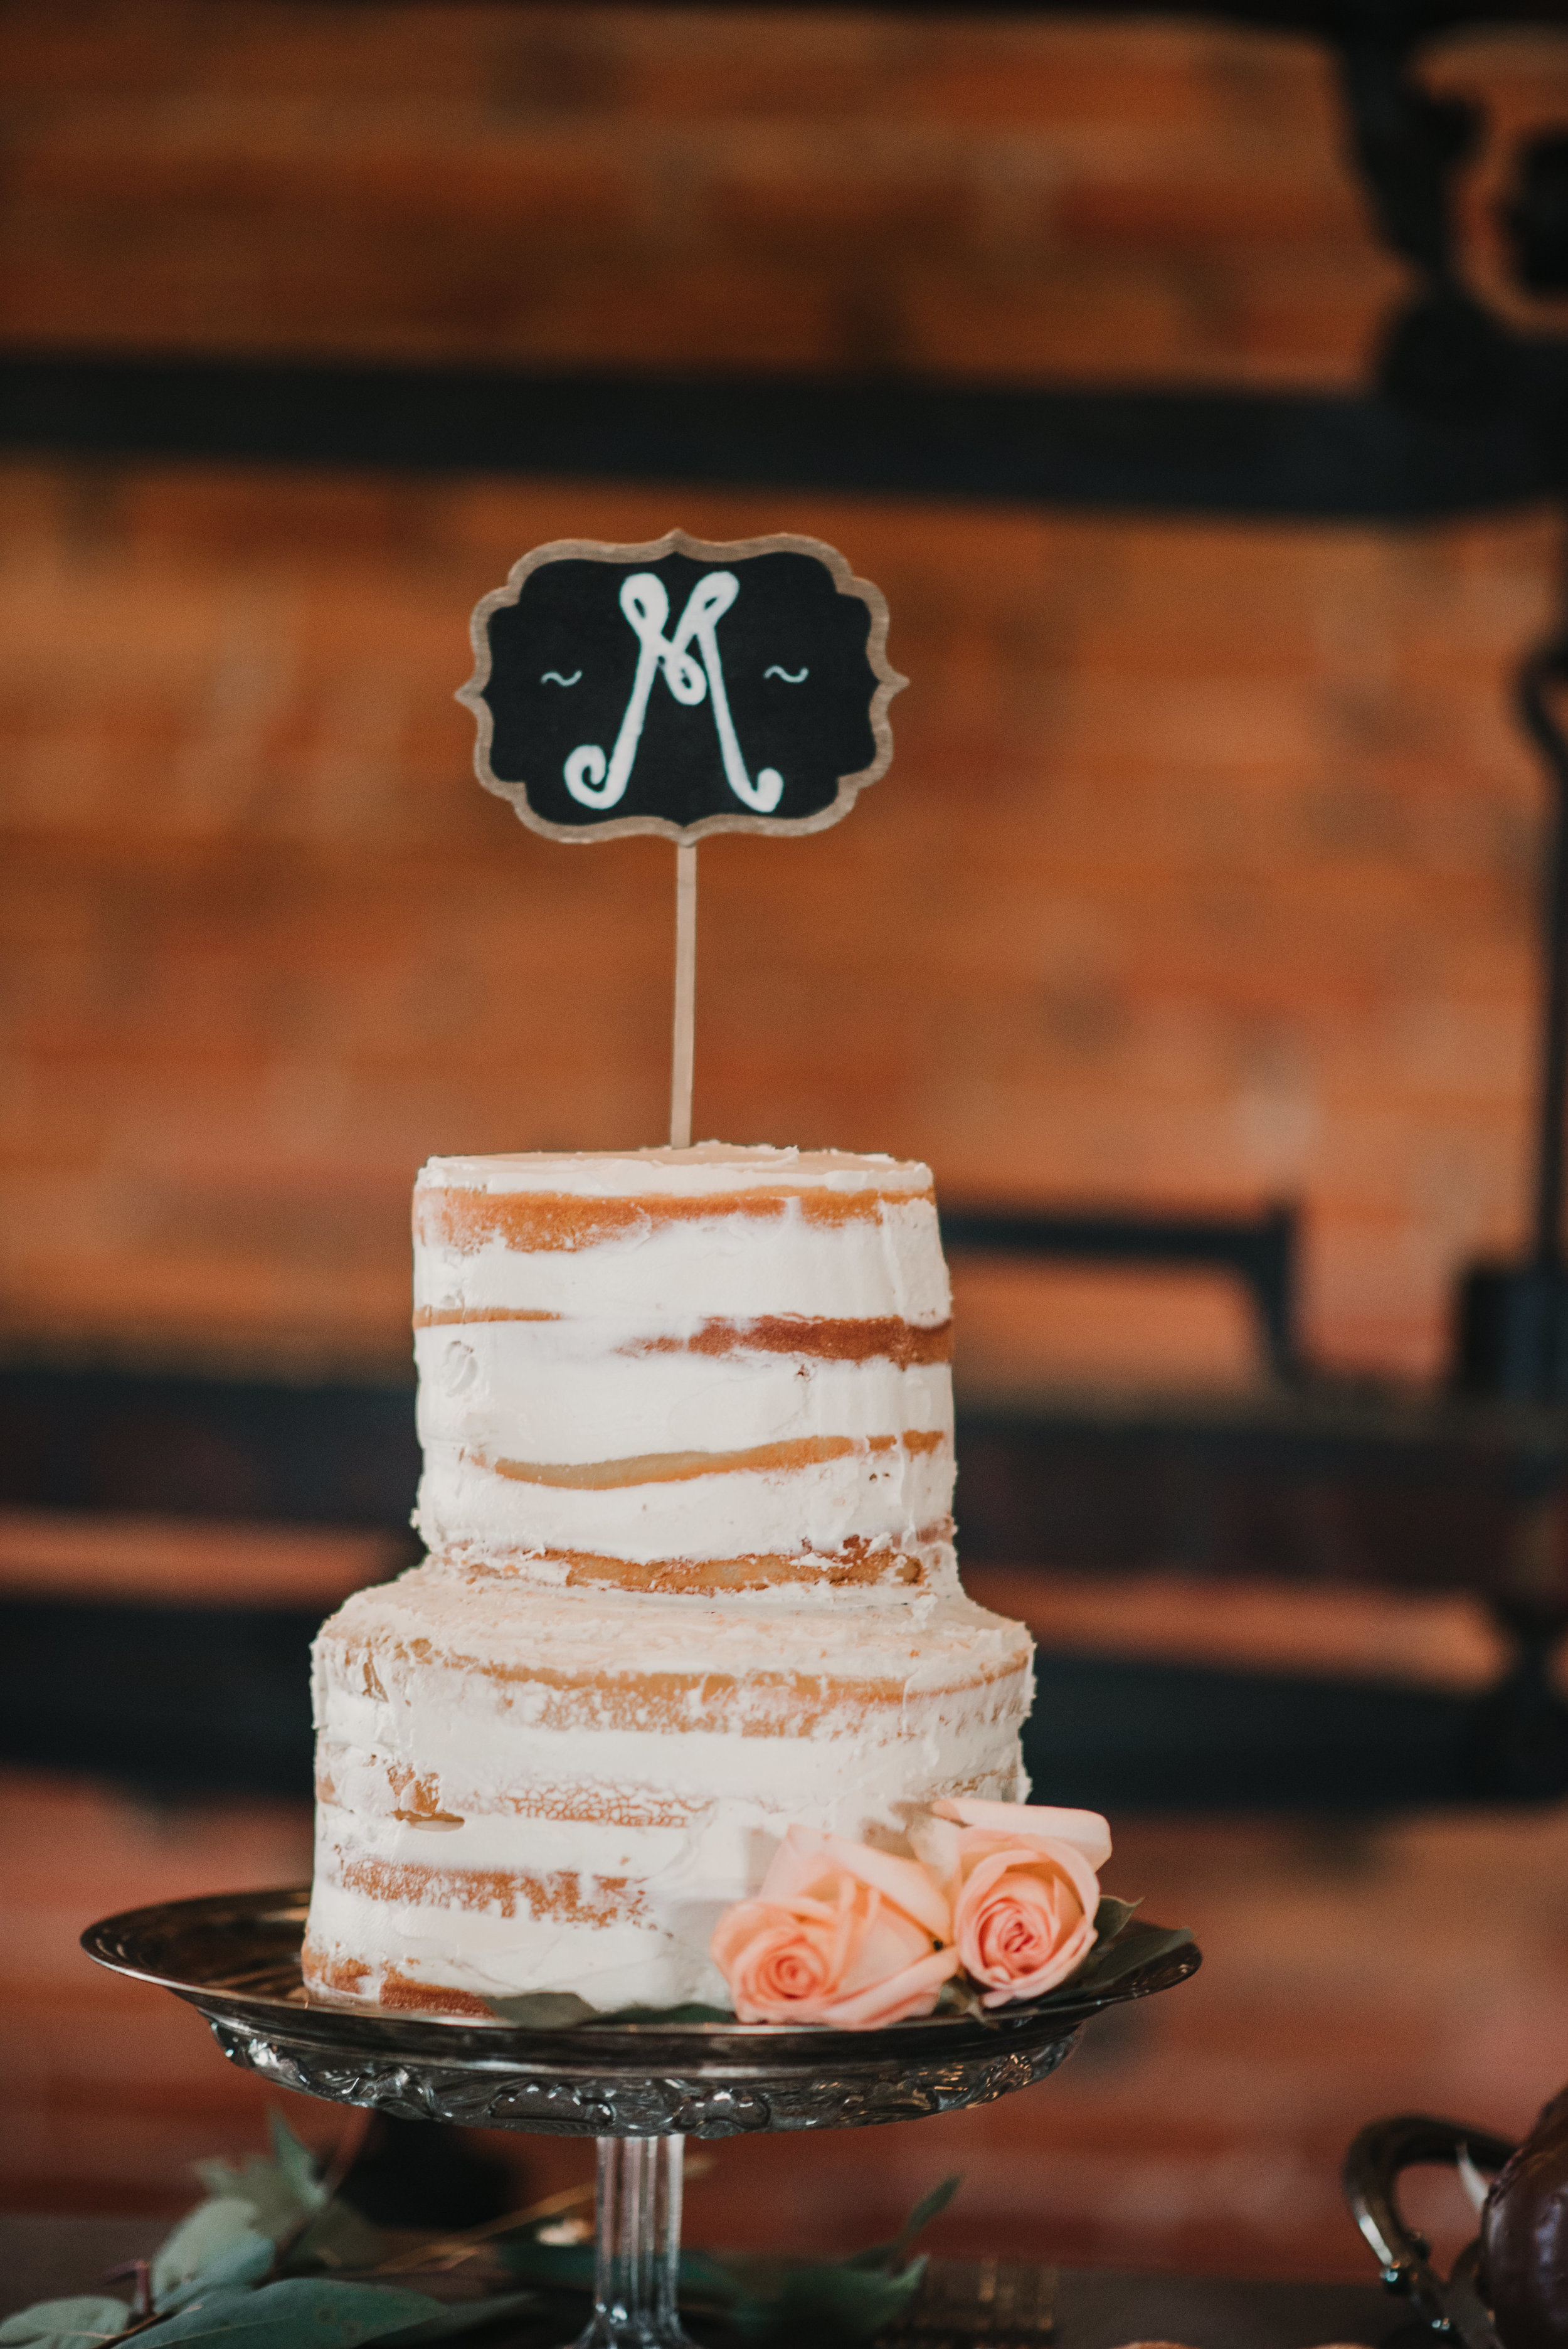 Wedding cake with initial cake topper